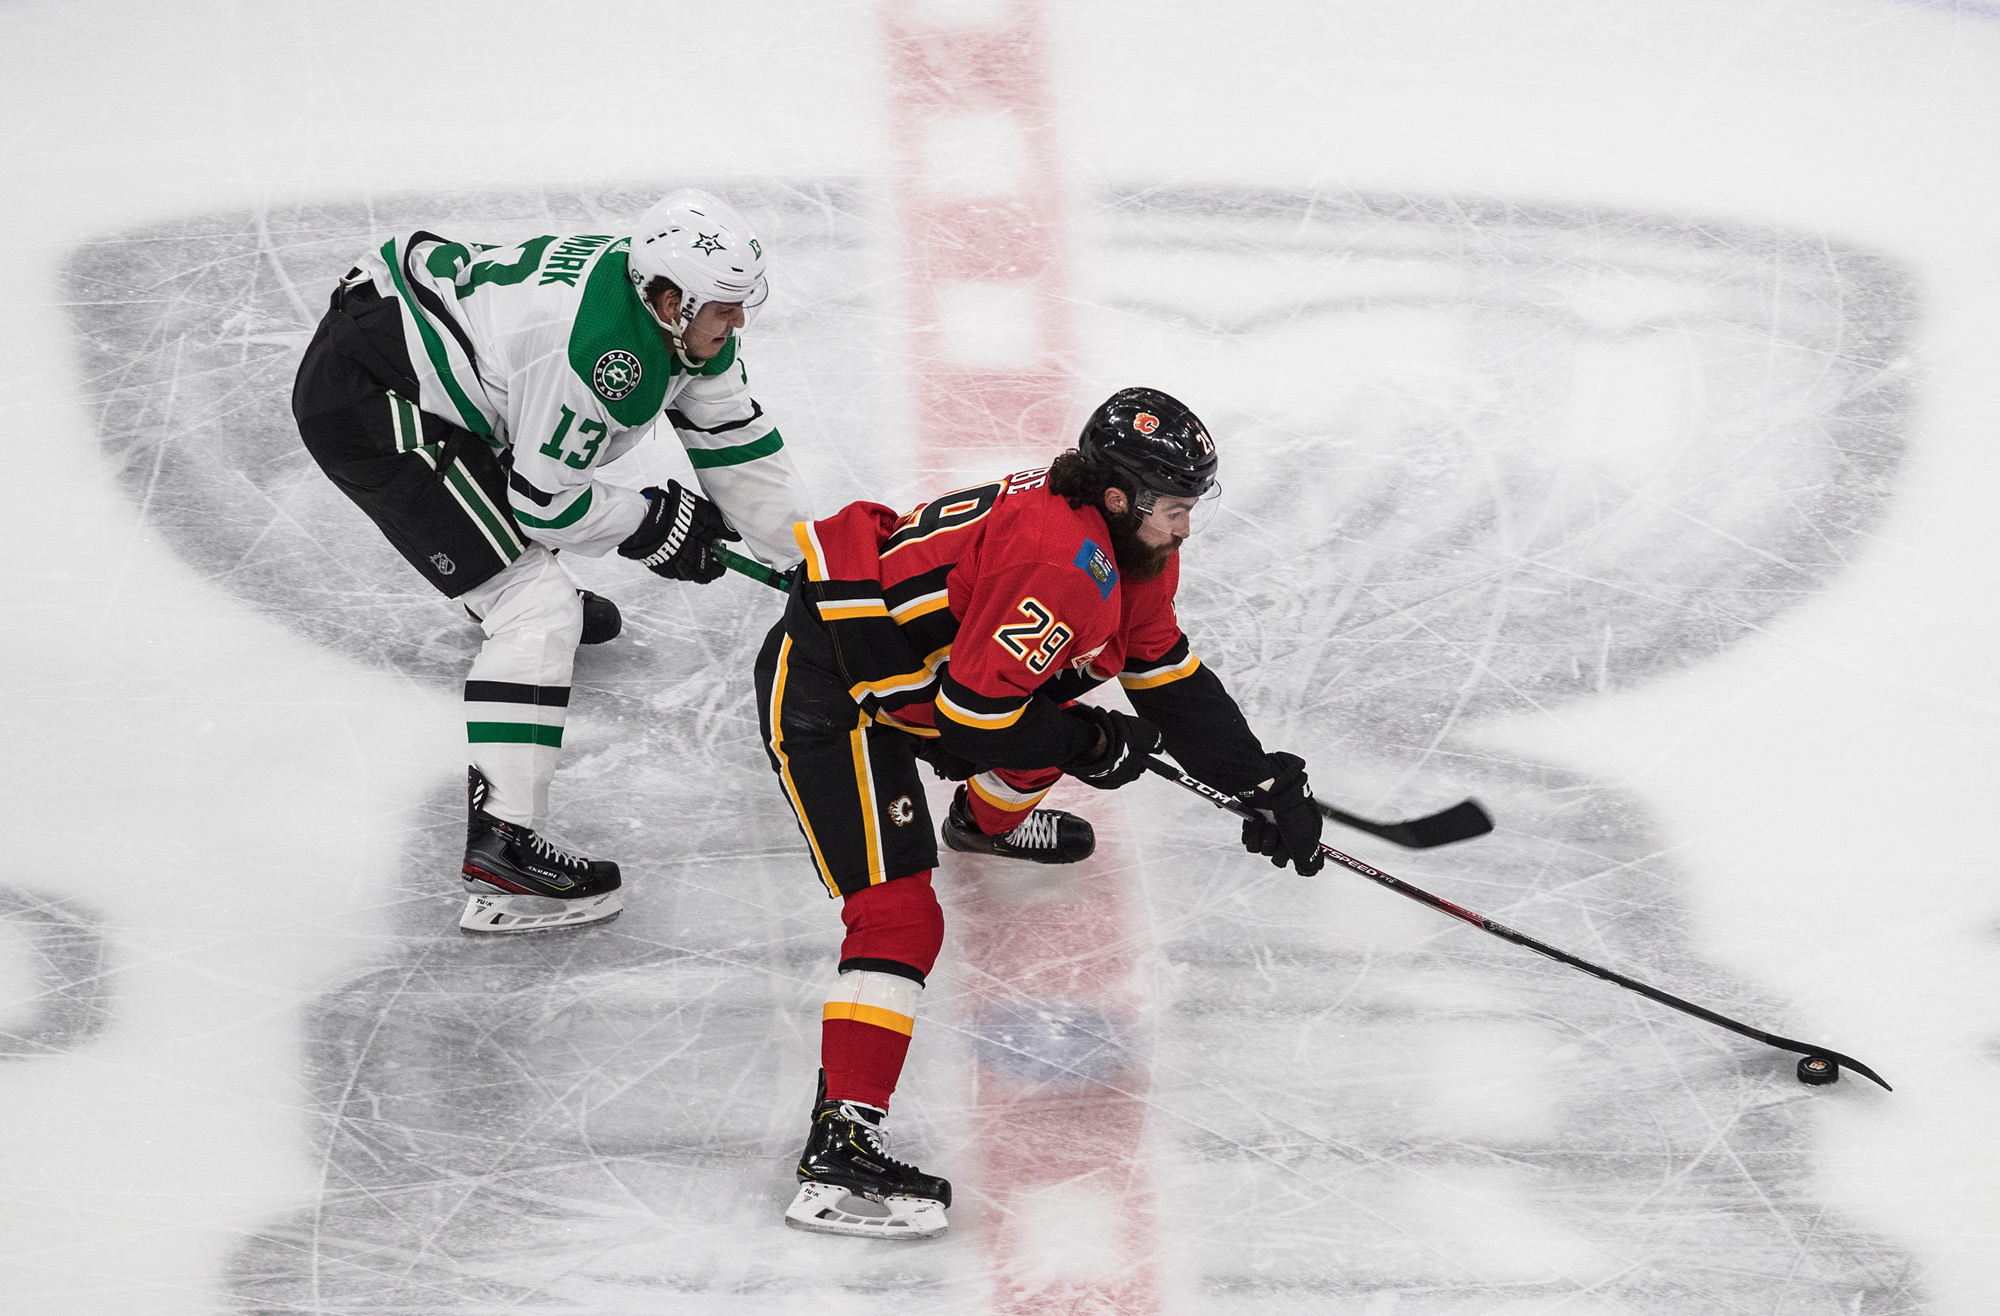 Calgary Flames' Dillon Dube is chased by Dallas Stars' Mattias Janmark during second-period NHL Western Conference Stanley Cup hockey playoff action in Edmonton, Alberta, on August 16.